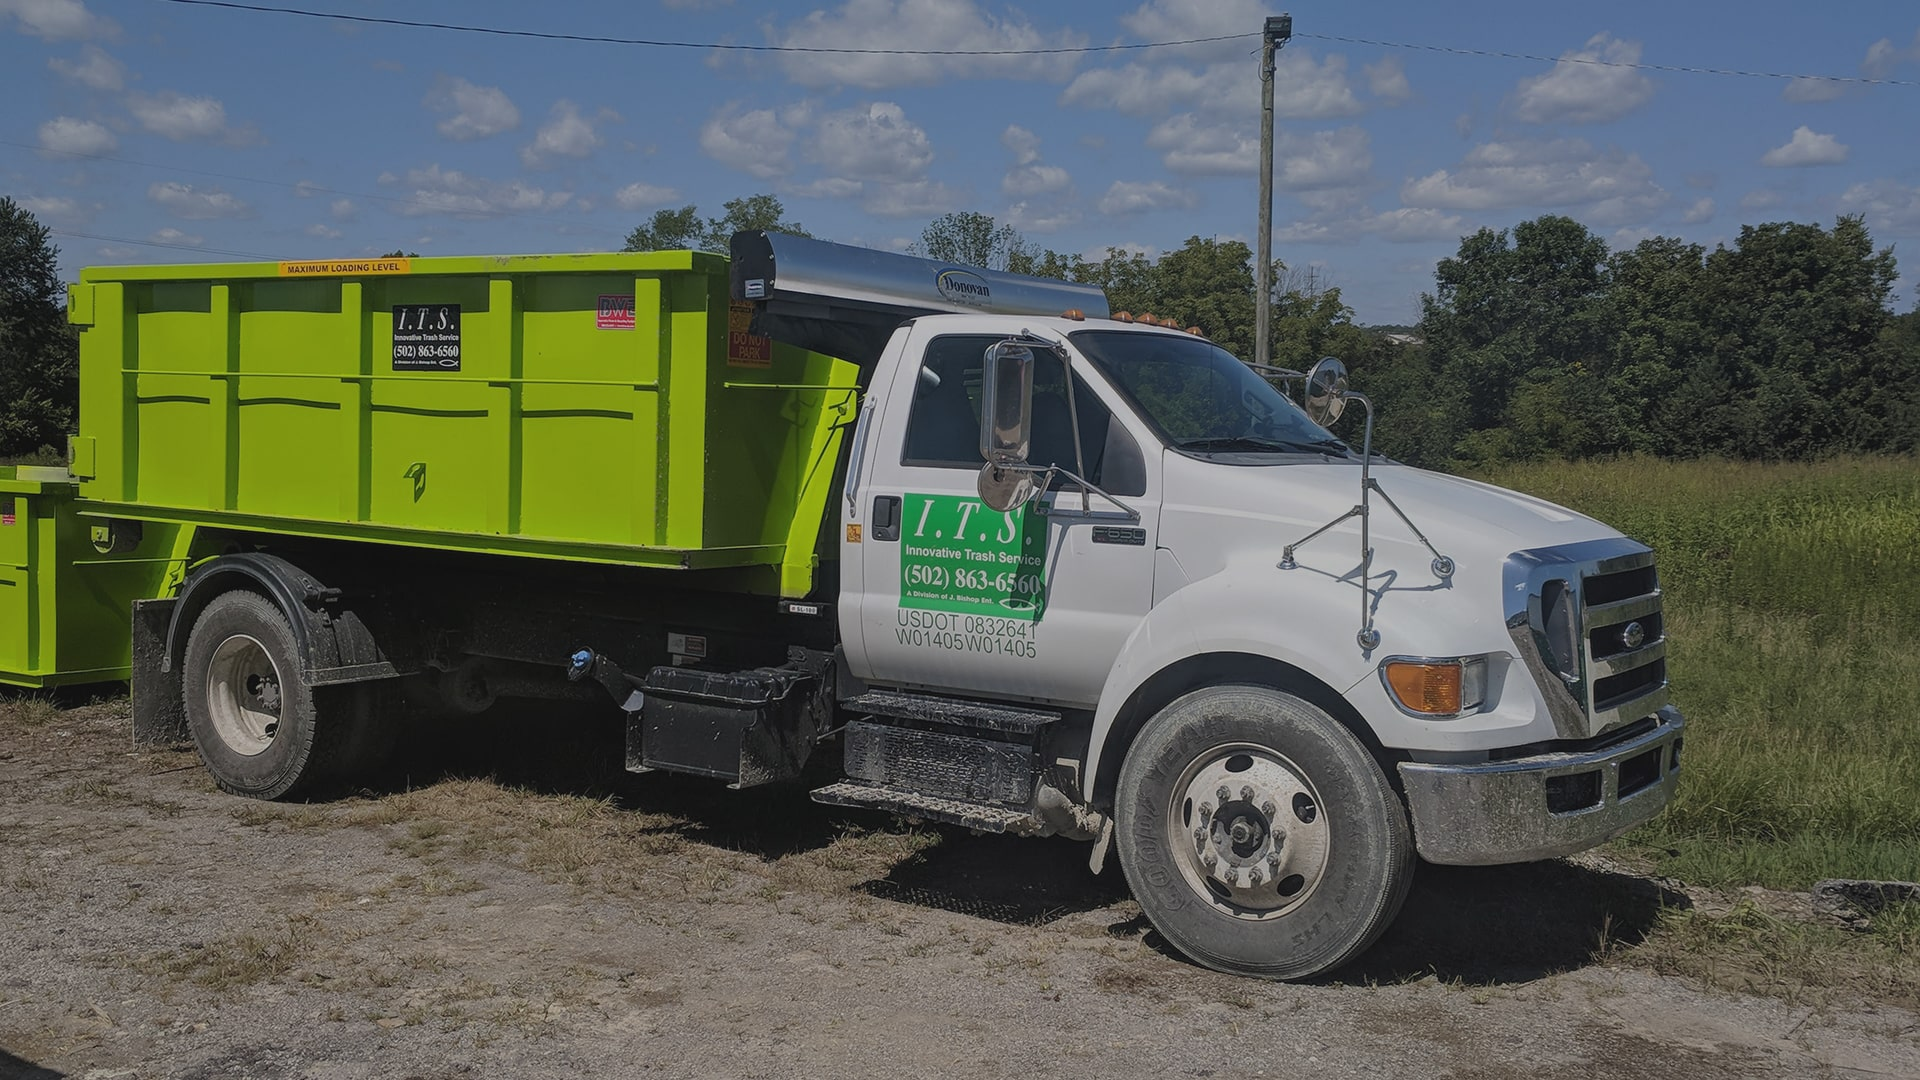 Dumpster Rentals Tailored to Your Needs!